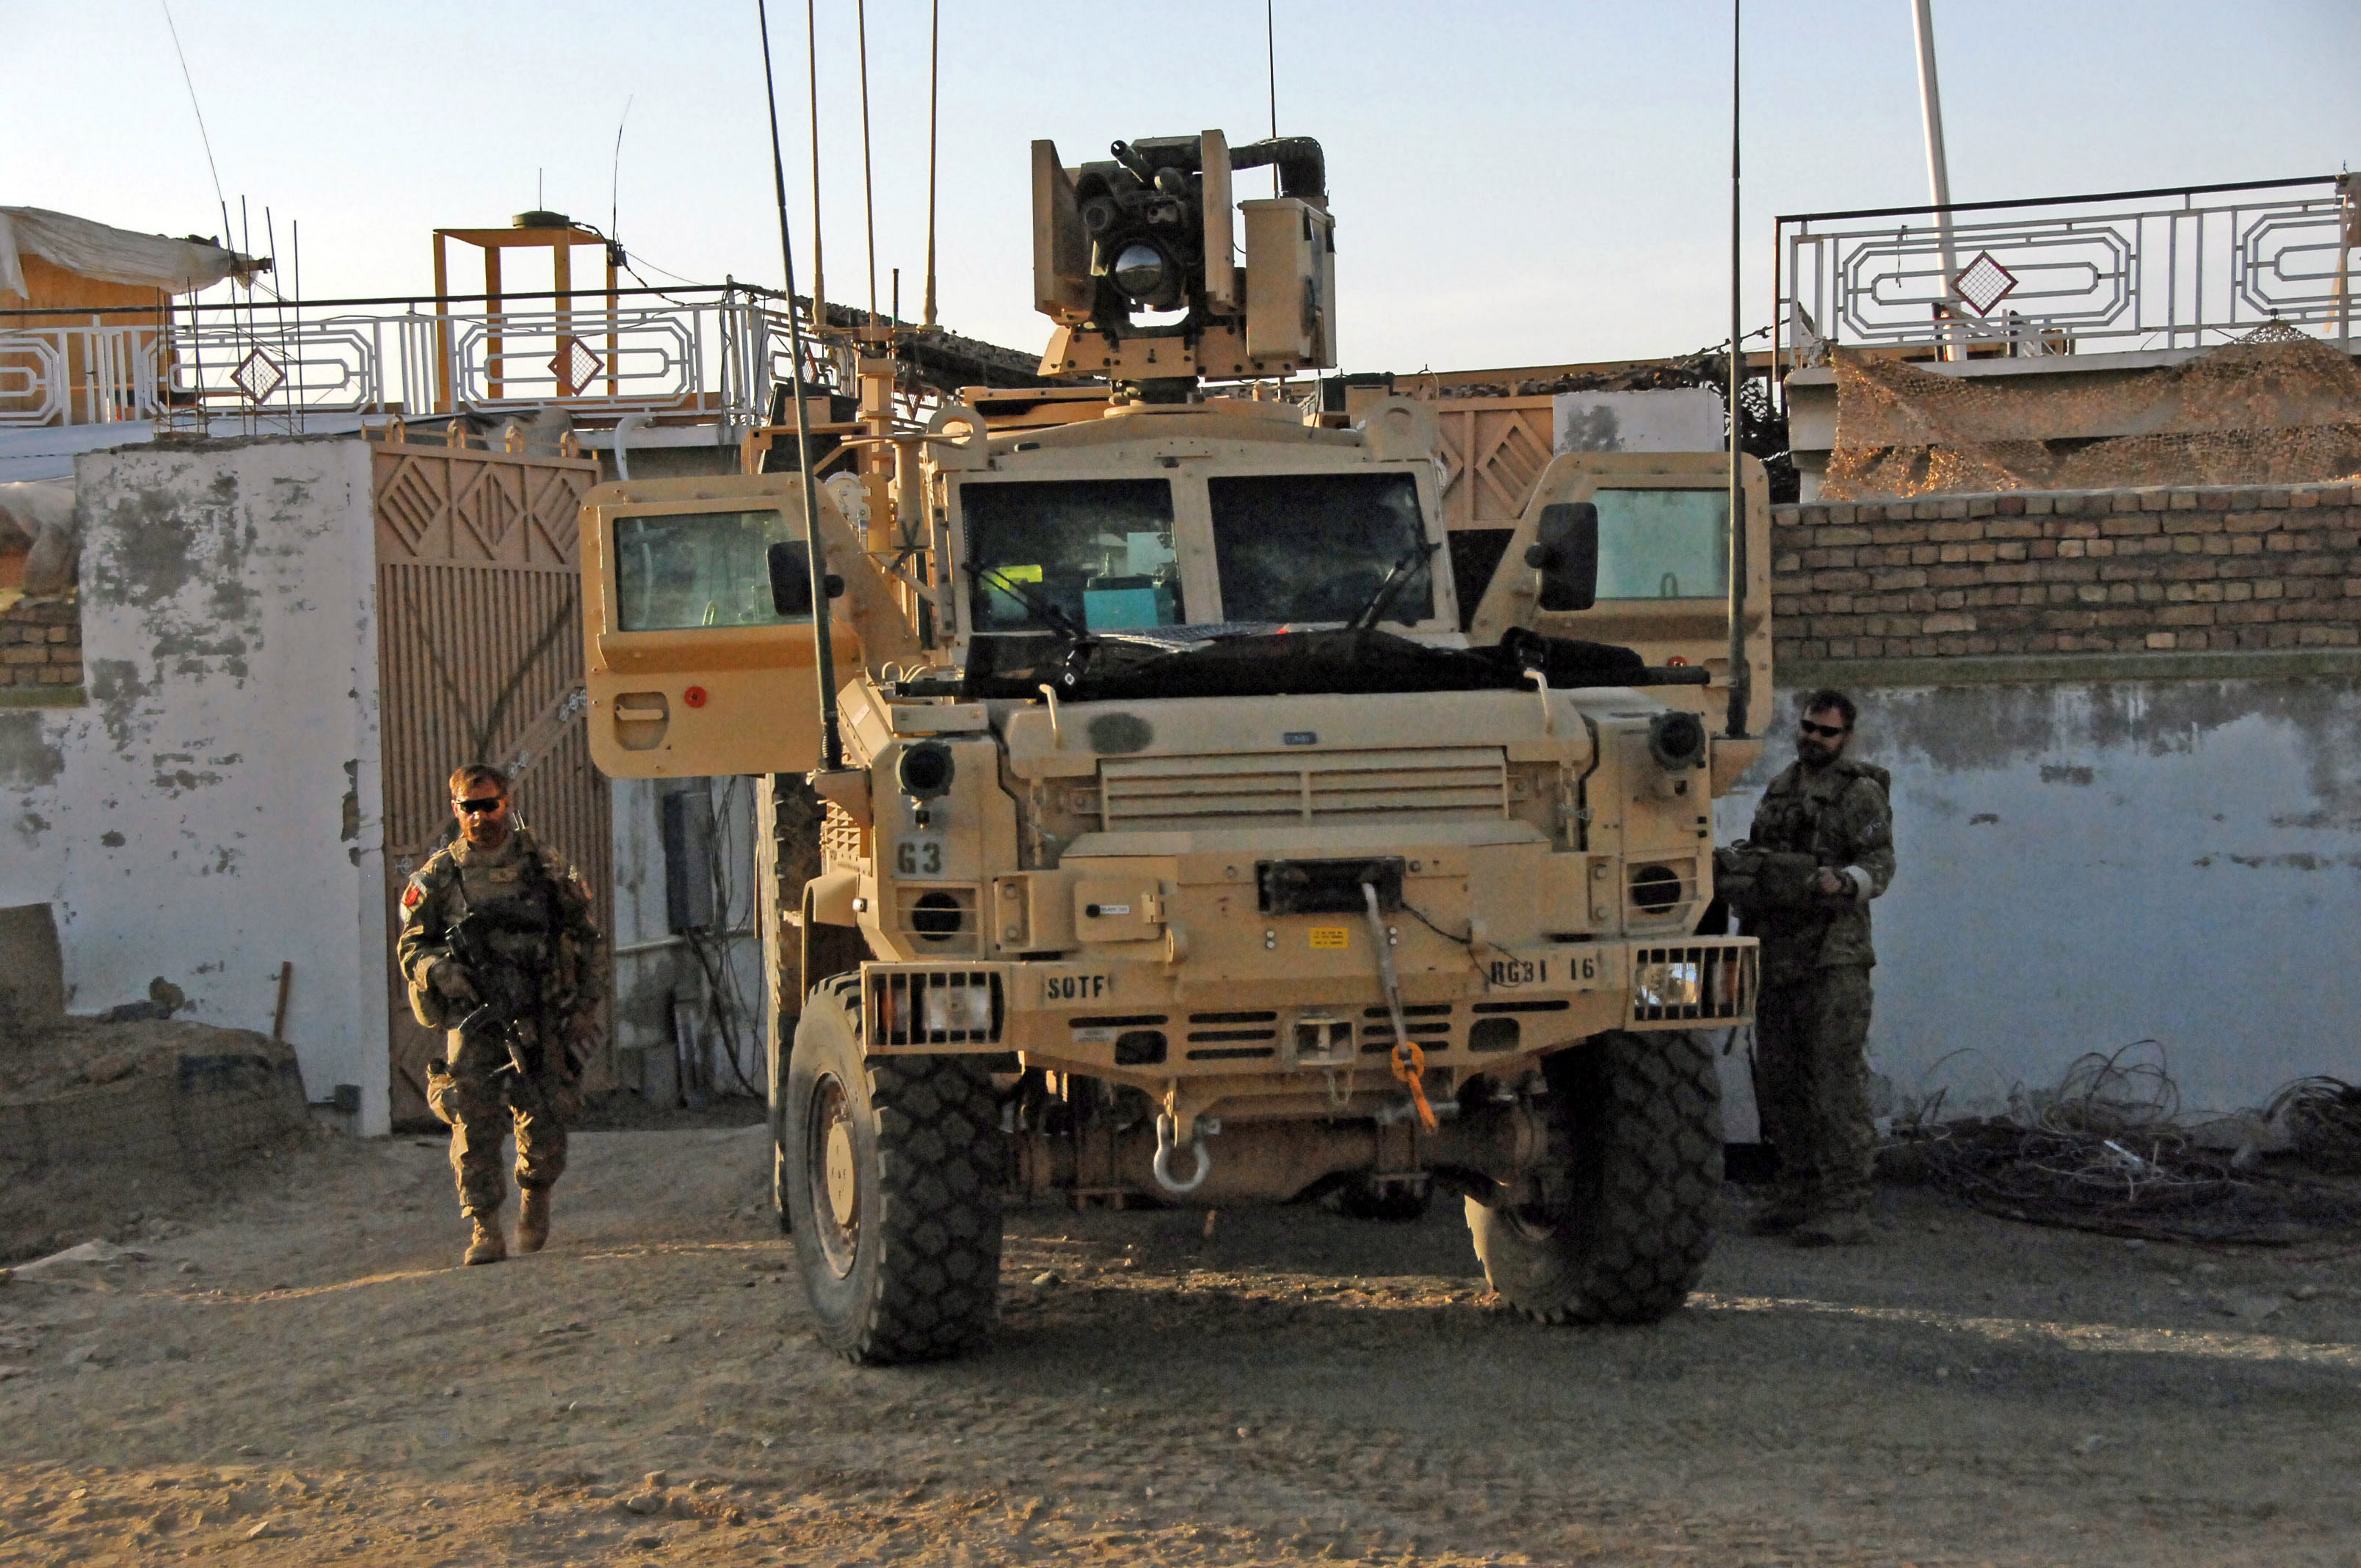 RG-31 MRAP - Special Ops Vehicles Photos